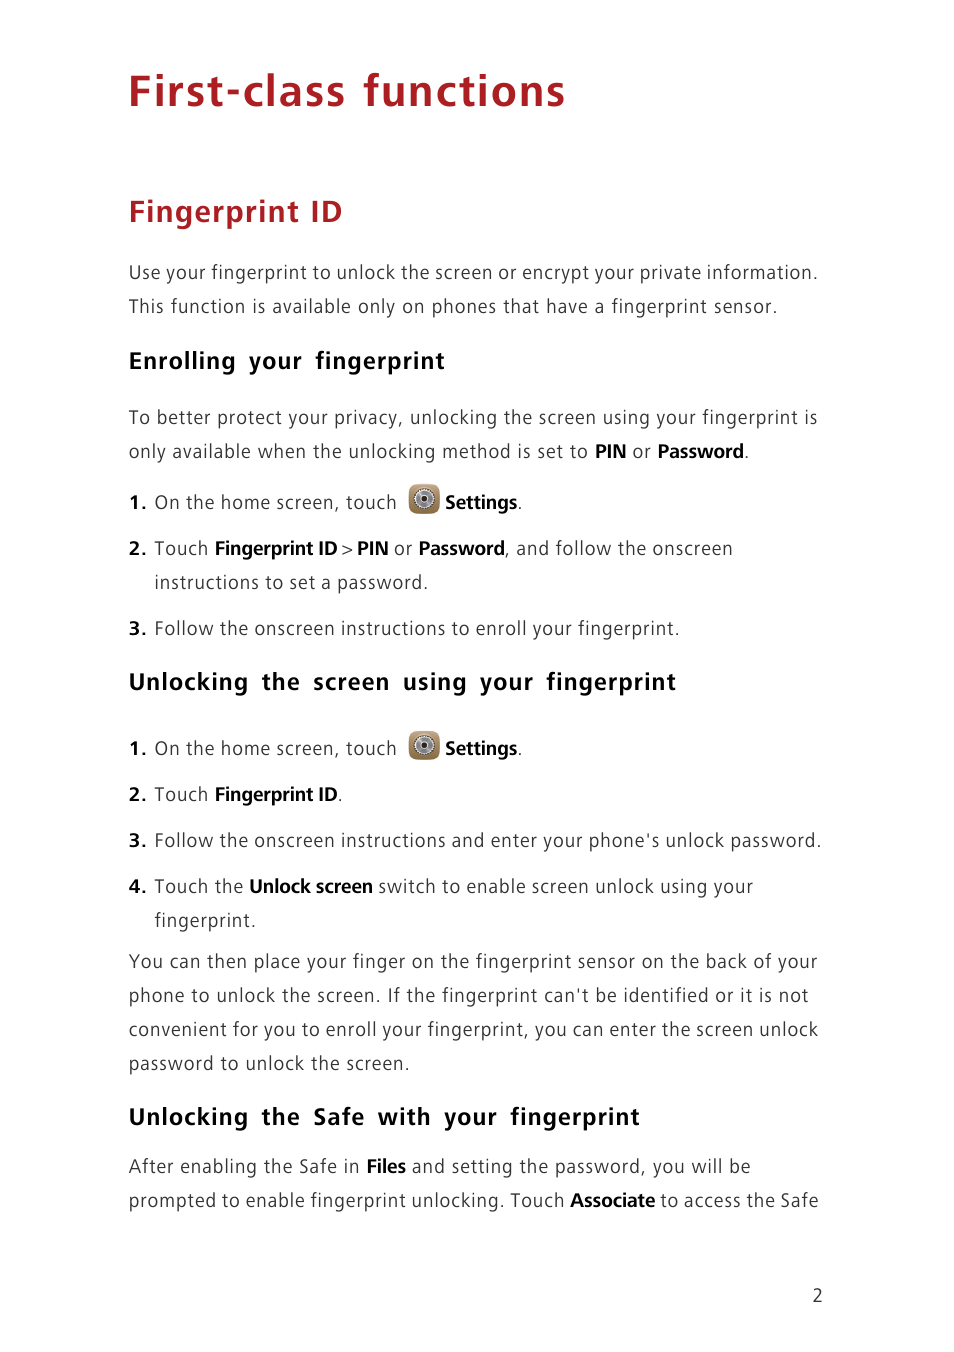 First-class functions, Fingerprint id, Enrolling your